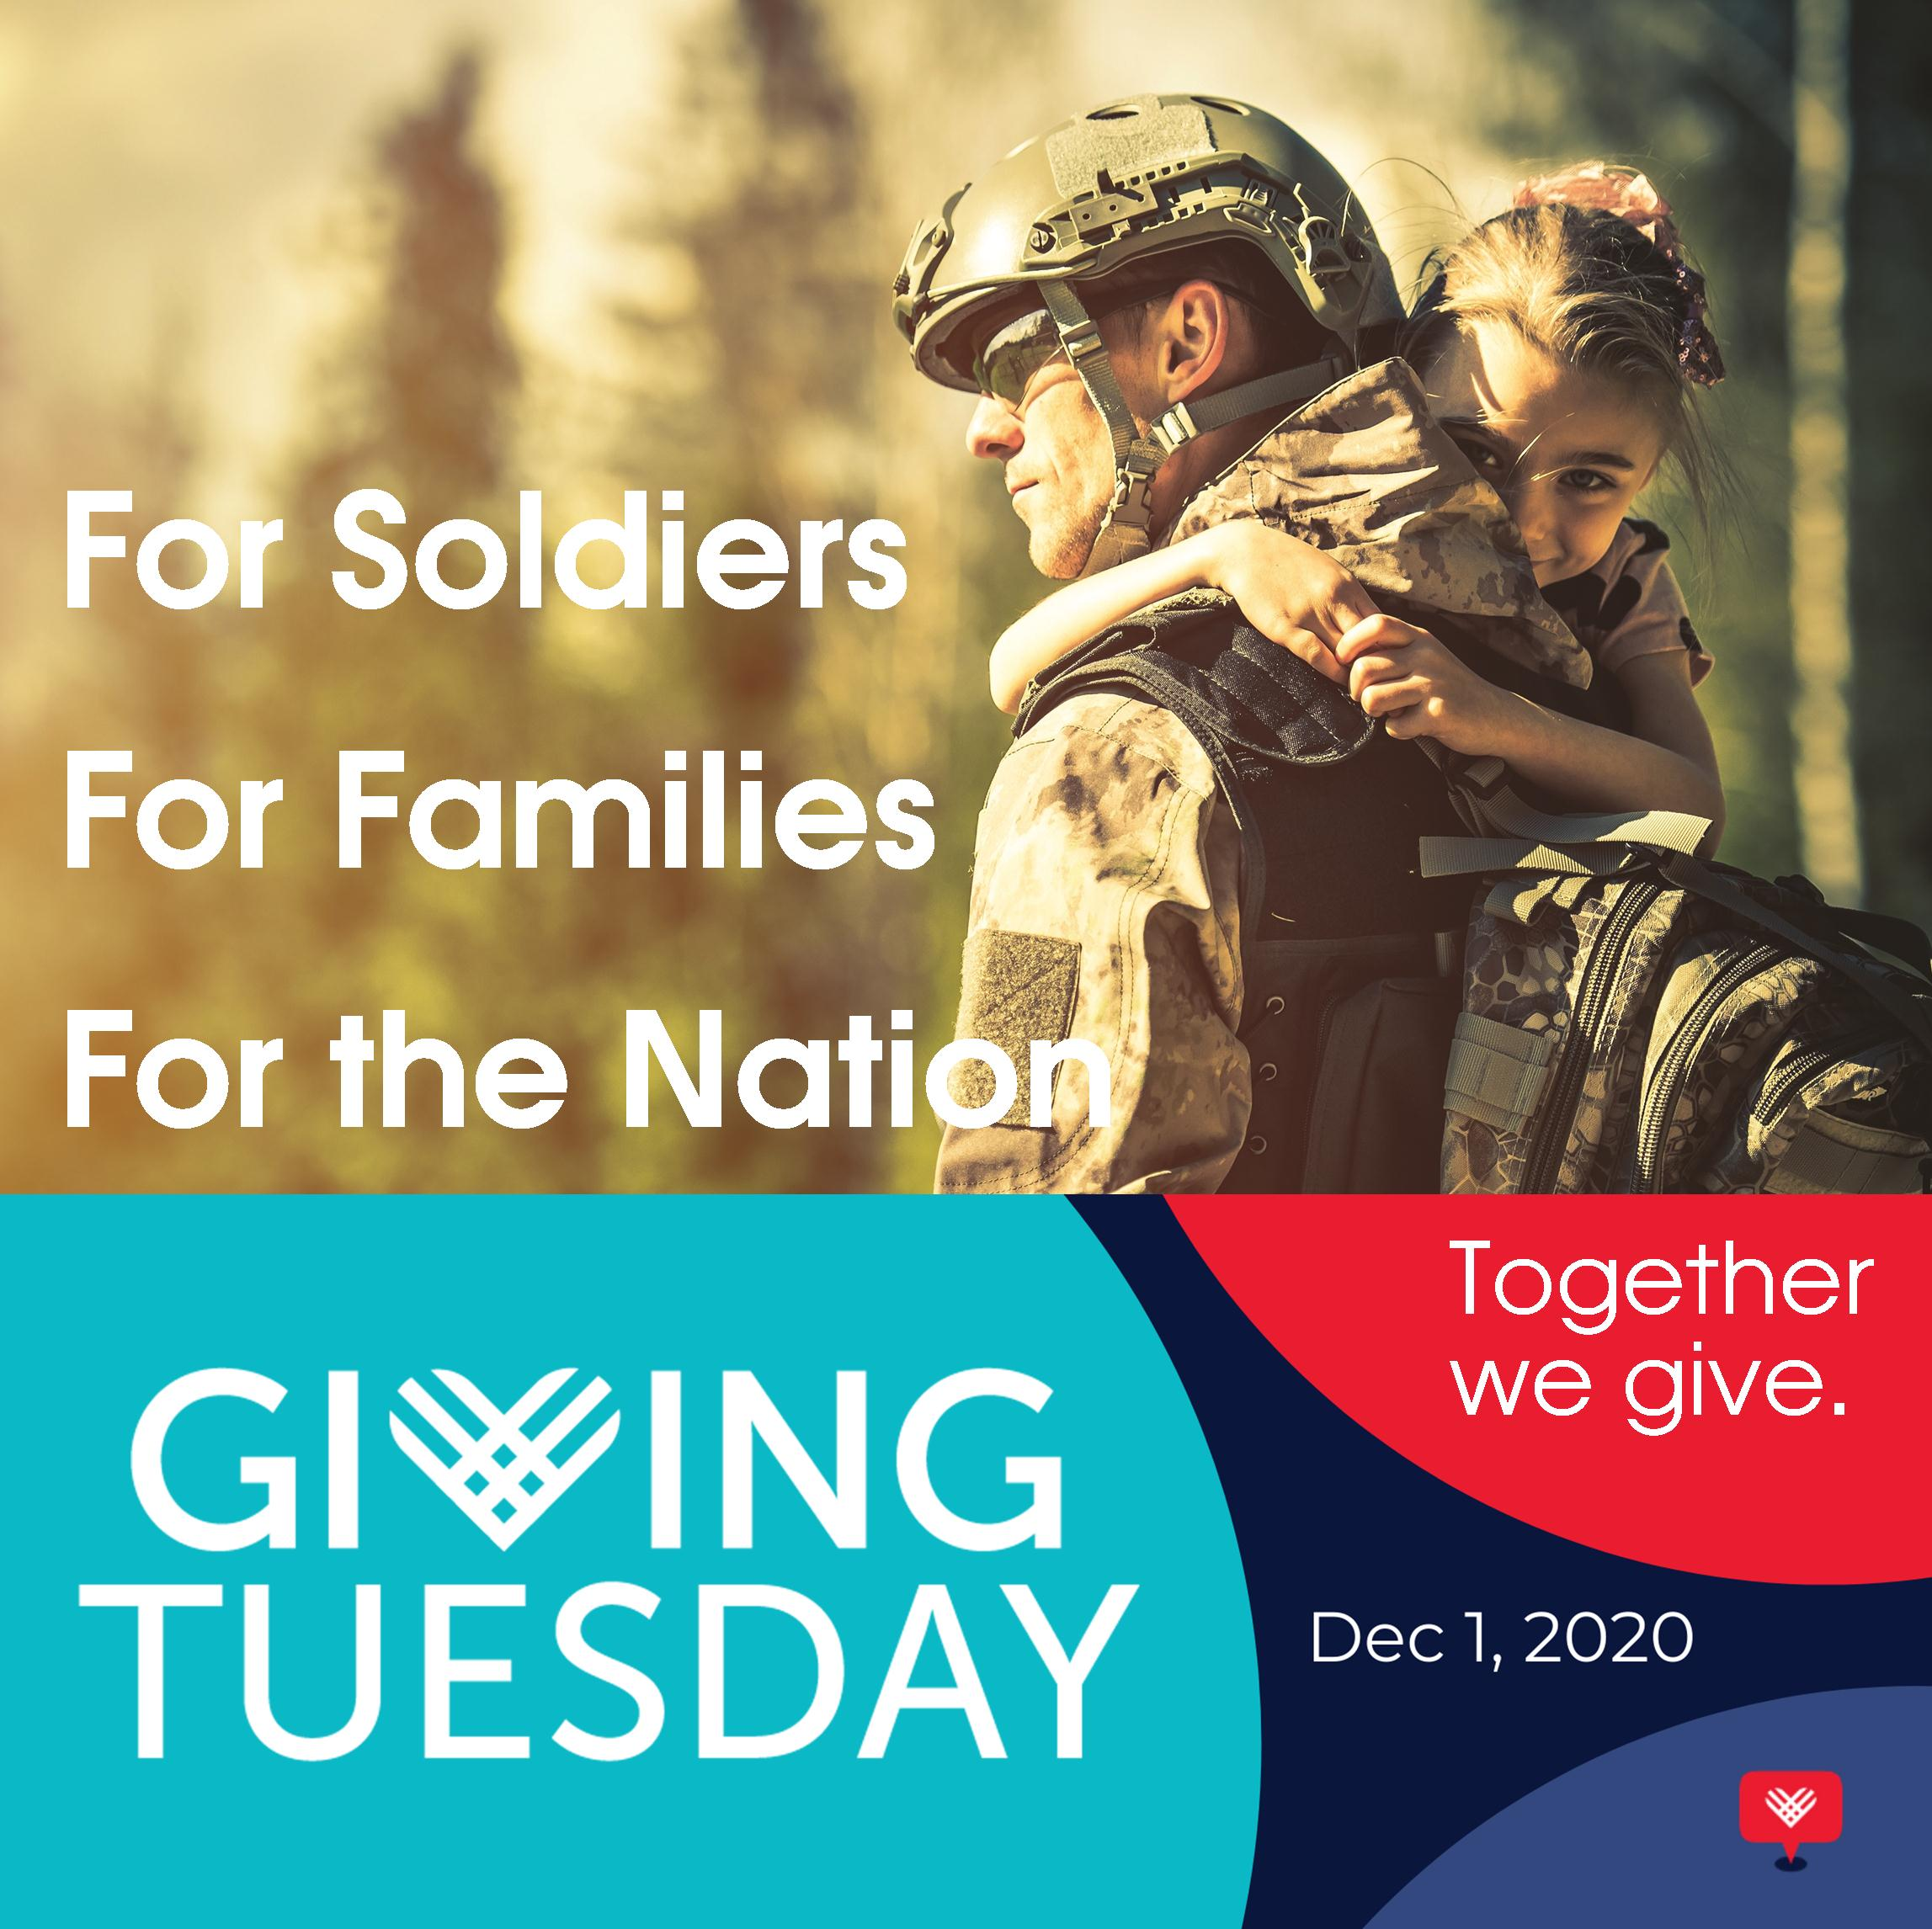 #GivingTuesday – For Soldiers, For Families, For the Nation